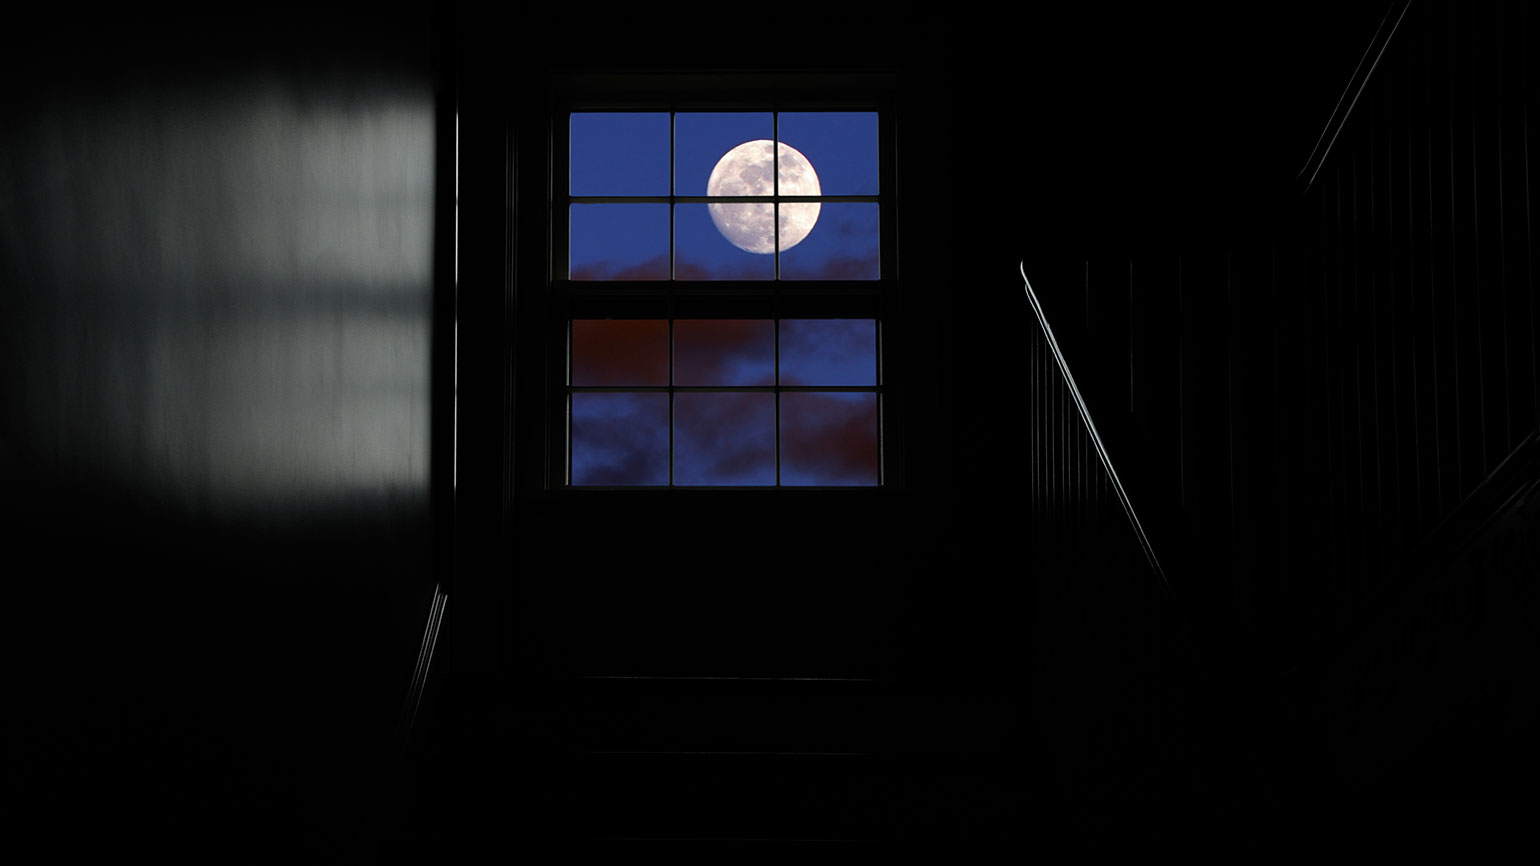 The moon as seen out a window at the top of a darkened staircase